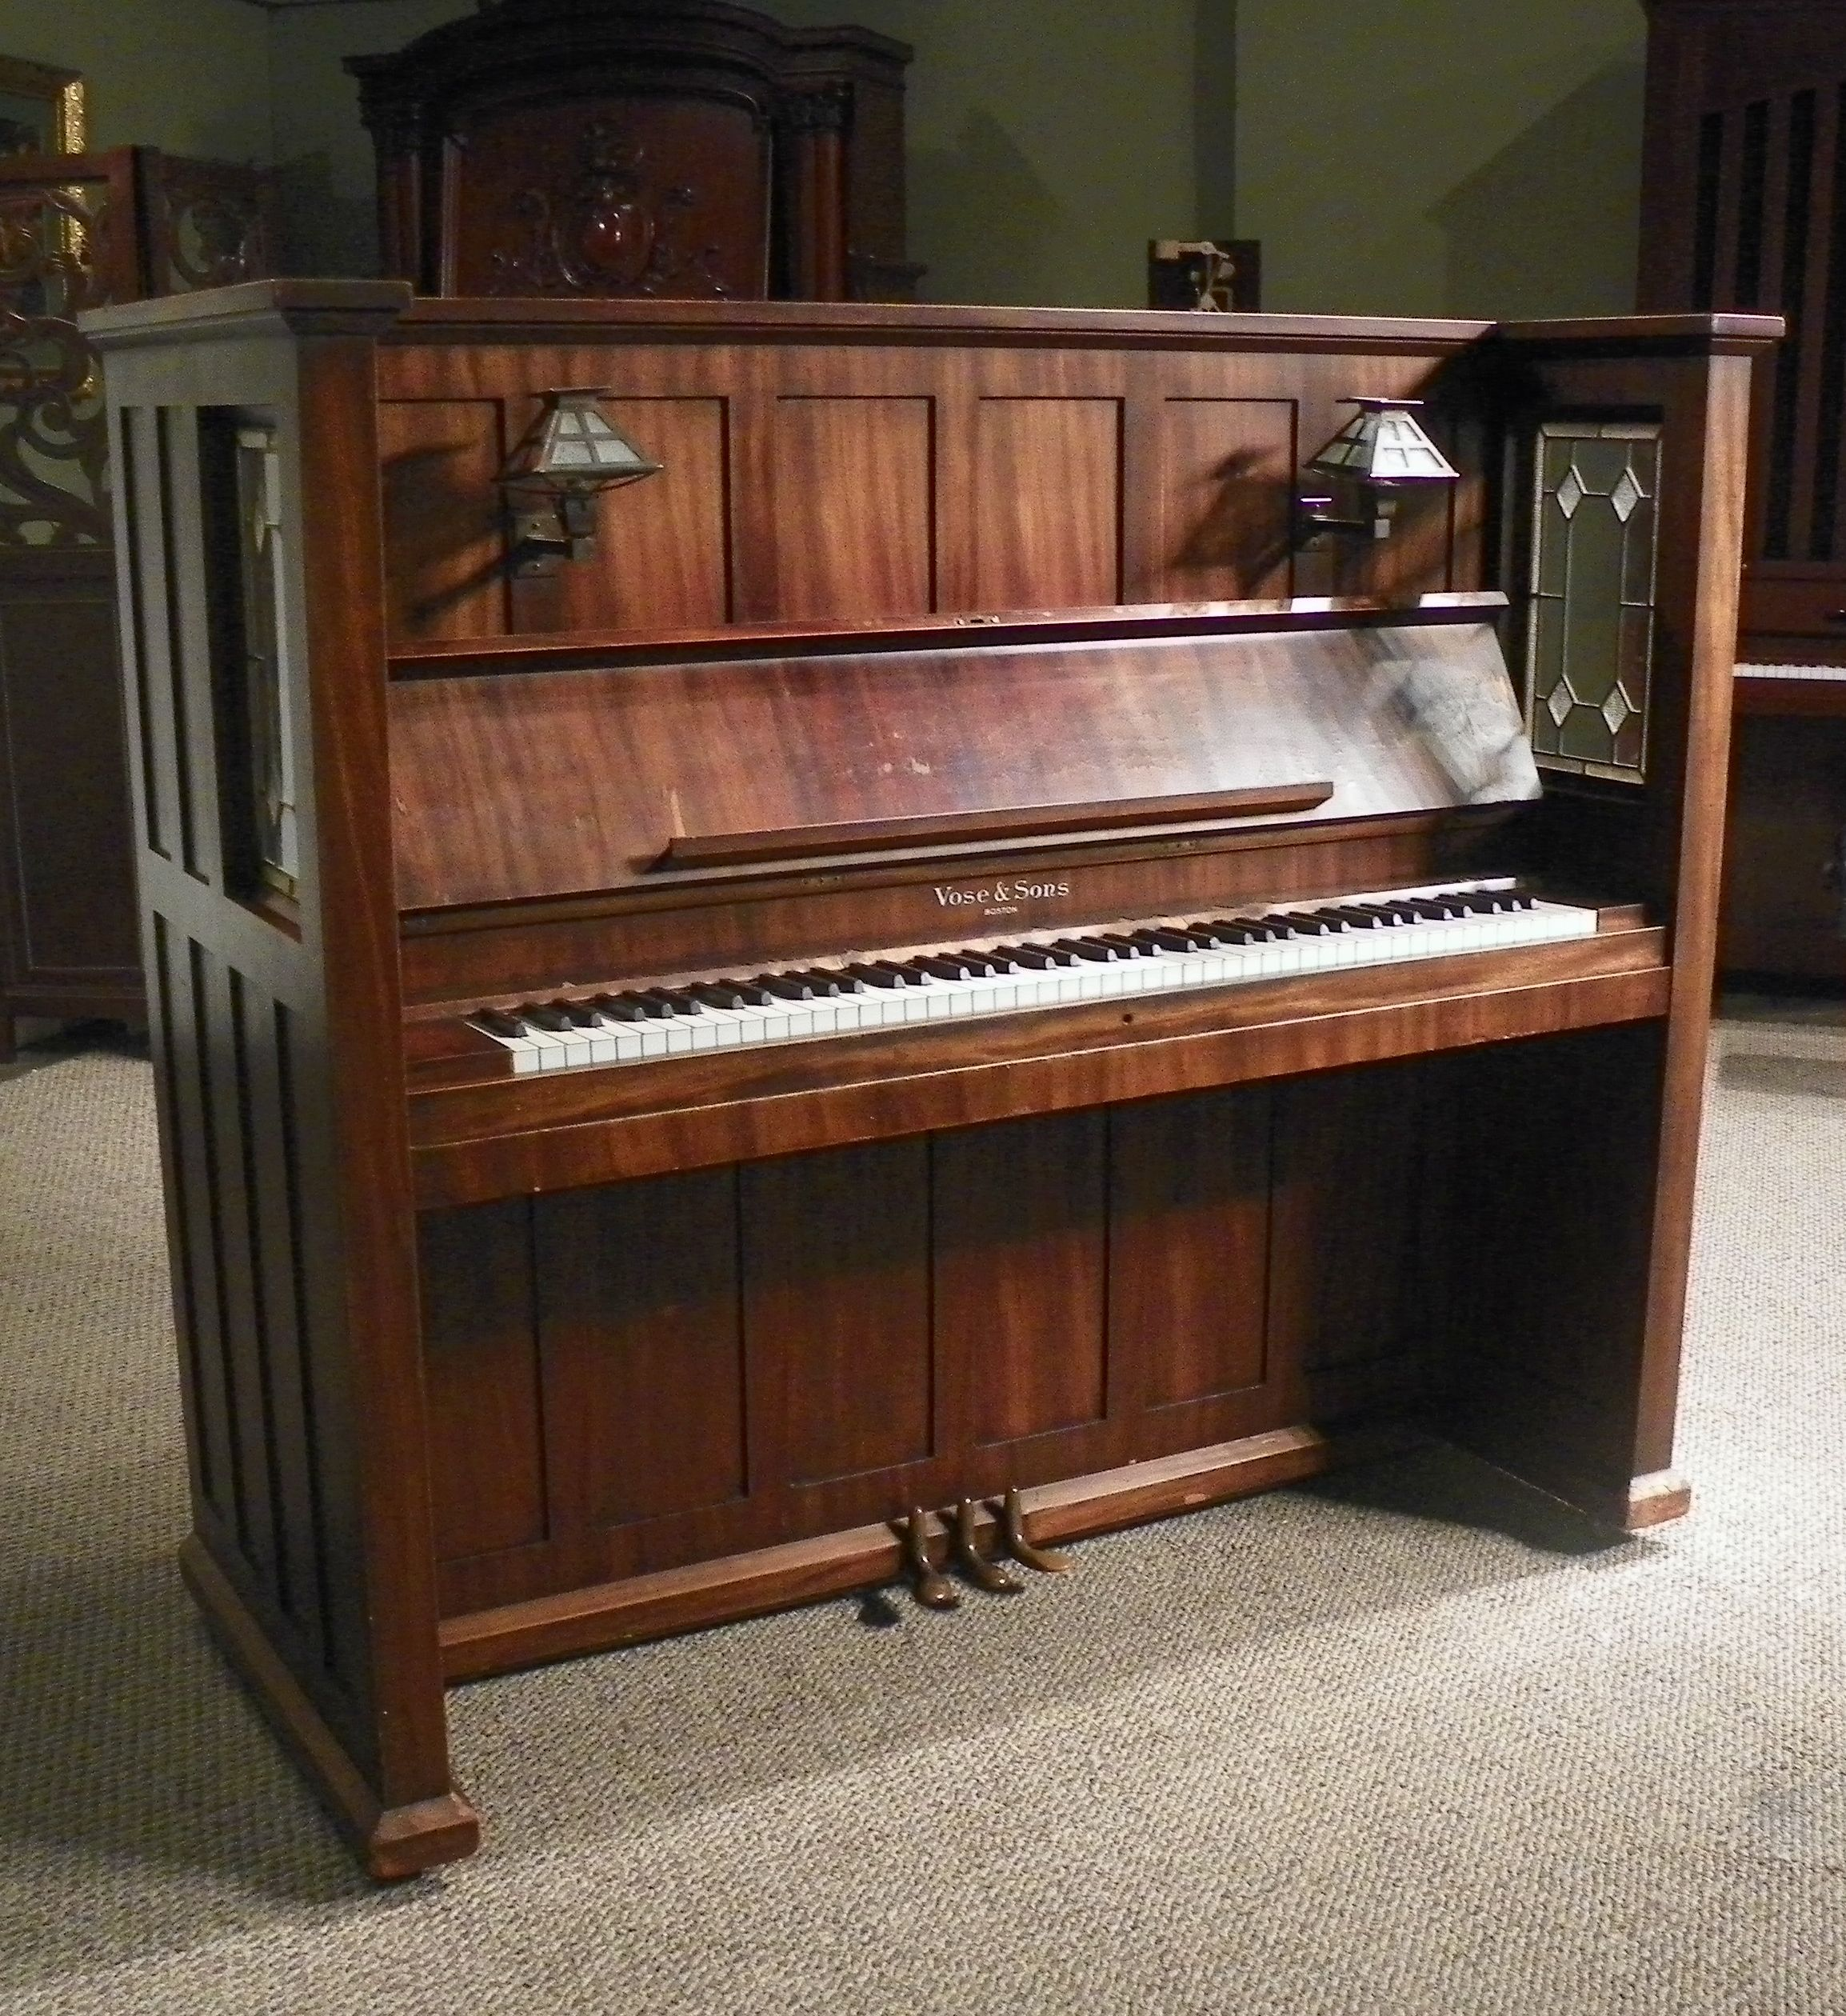 Upright Victorian Piano With Fluting And Inlaid Decoration Benches/stools Well Loved And Used.